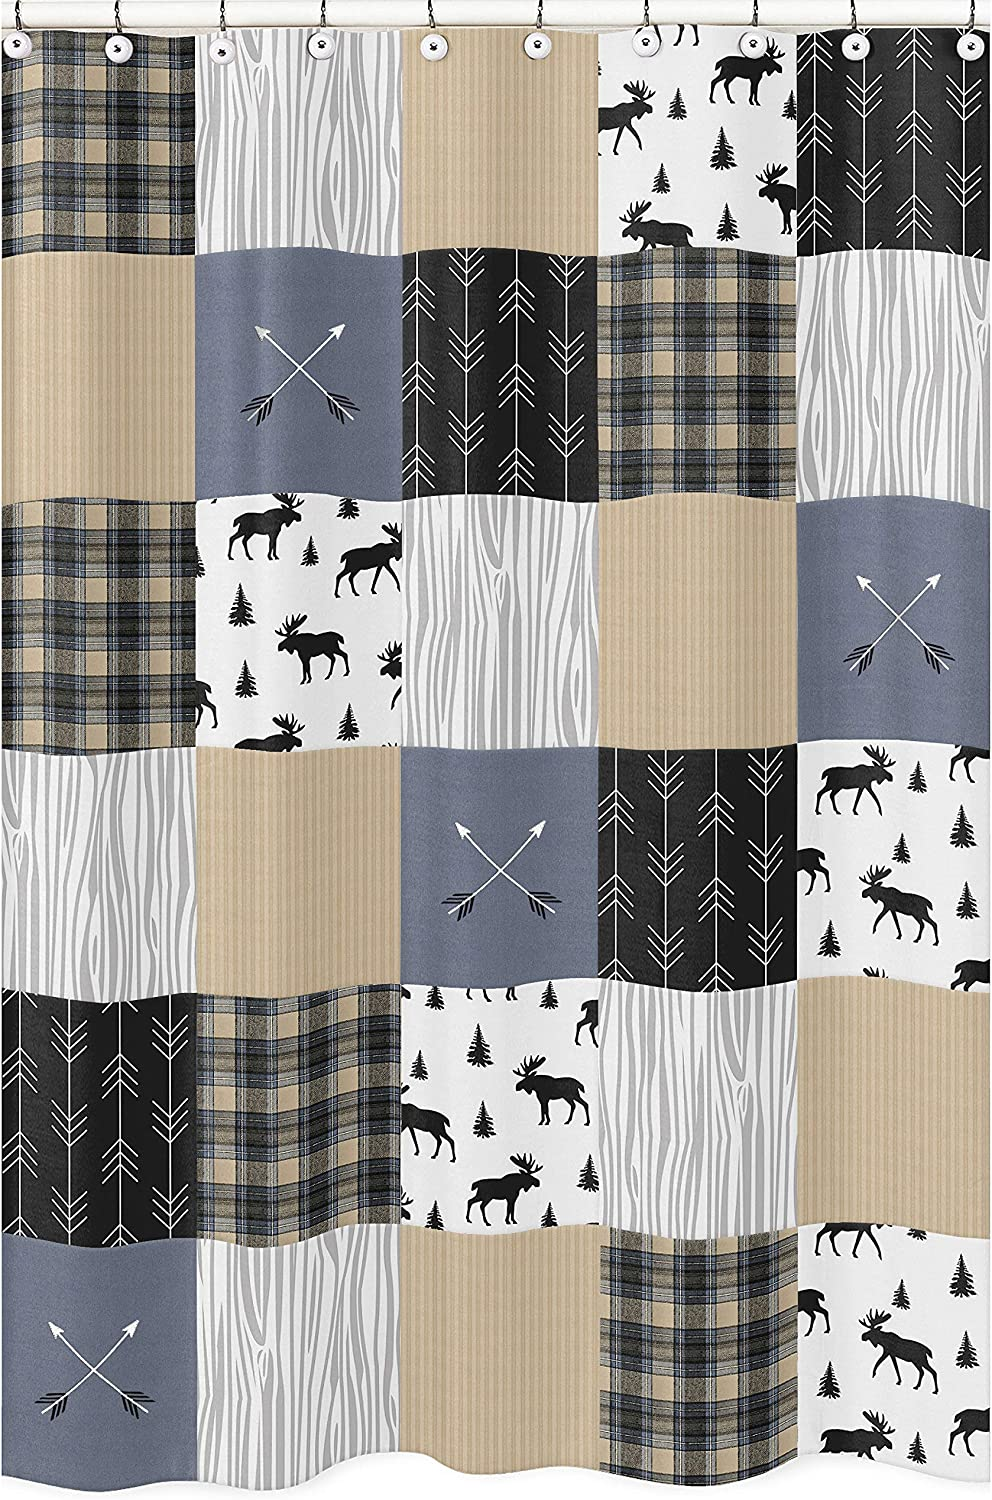 Sweet Free Shipping New Jojo Designs Blue Recommendation Tan and Plaid Grey Woodland Black